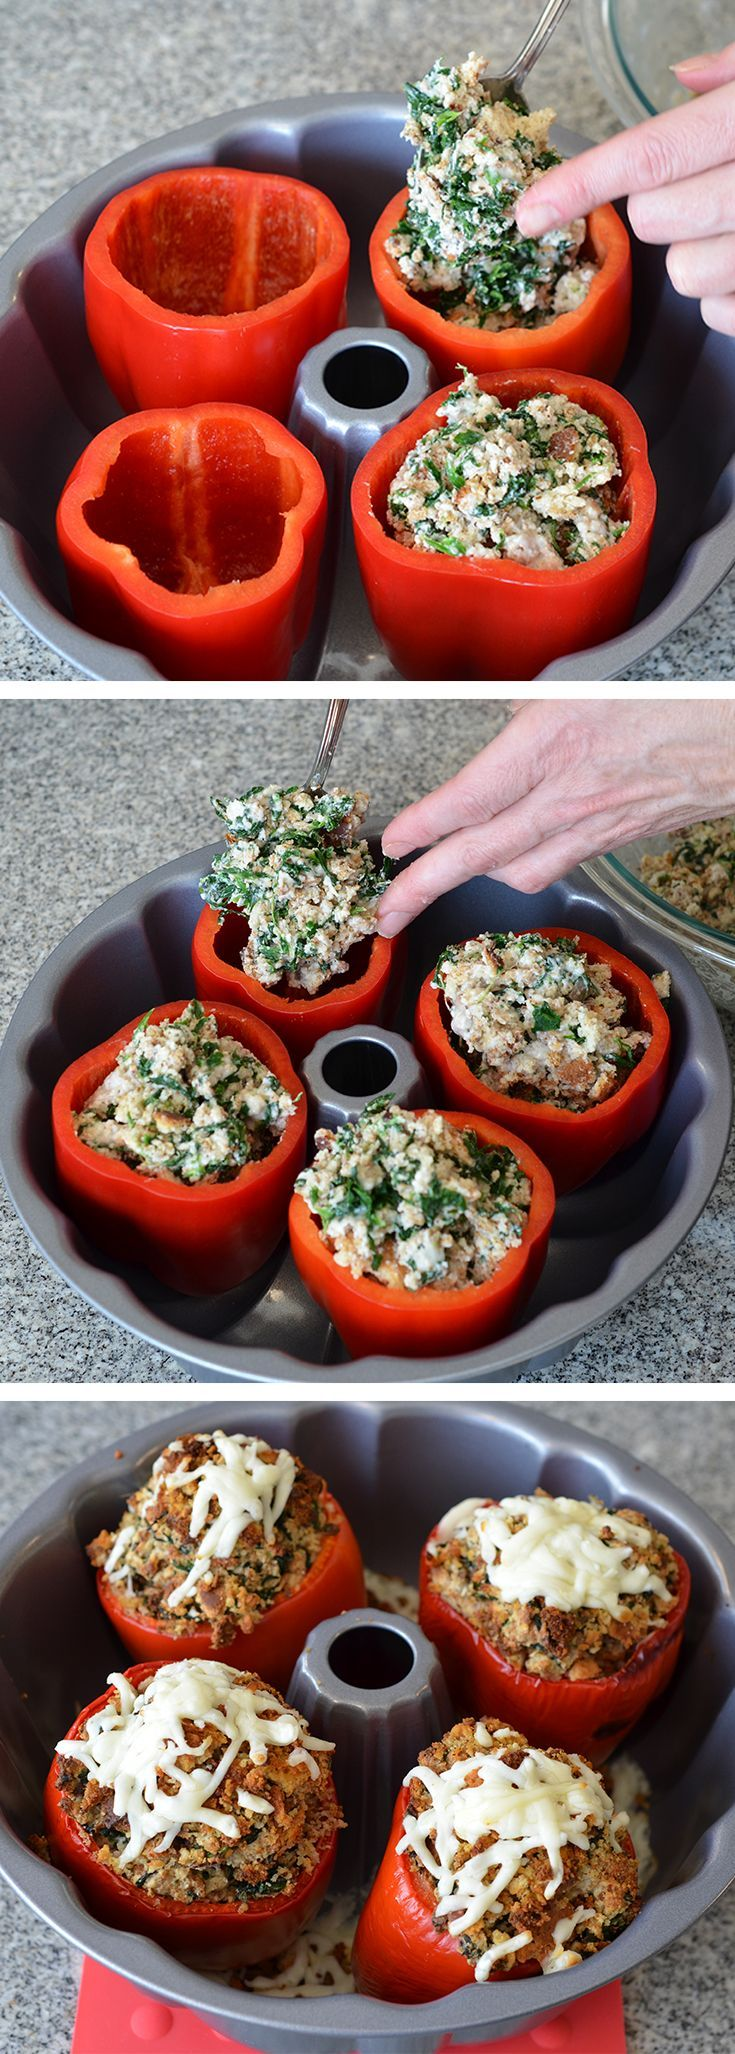 Cooking Tip: Arrange stuffed bell peppers in a bundt or tube pan for baking. They'll stay upright and won't tip over as easily!